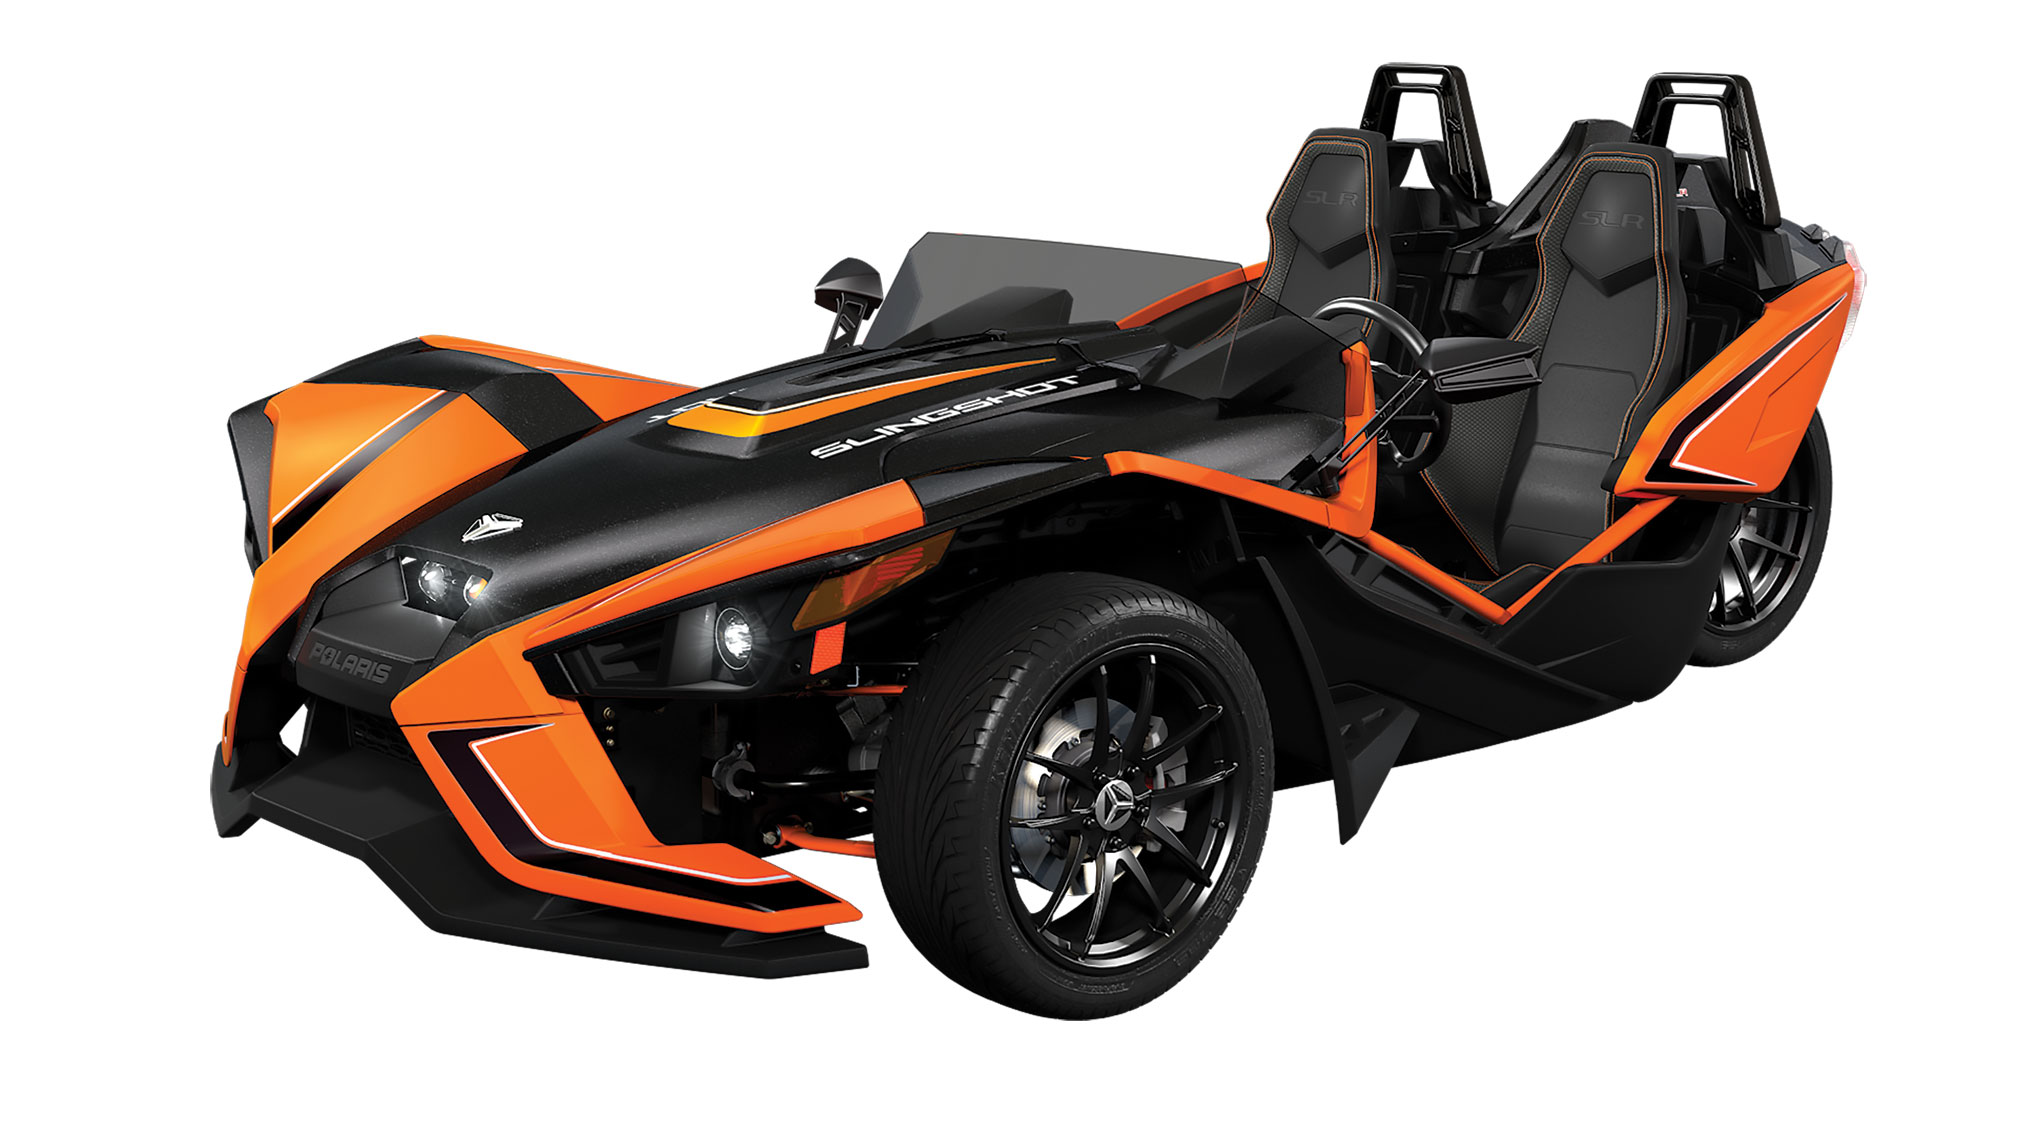 2018 polaris slingshot slr review totalmotorcycle. Black Bedroom Furniture Sets. Home Design Ideas